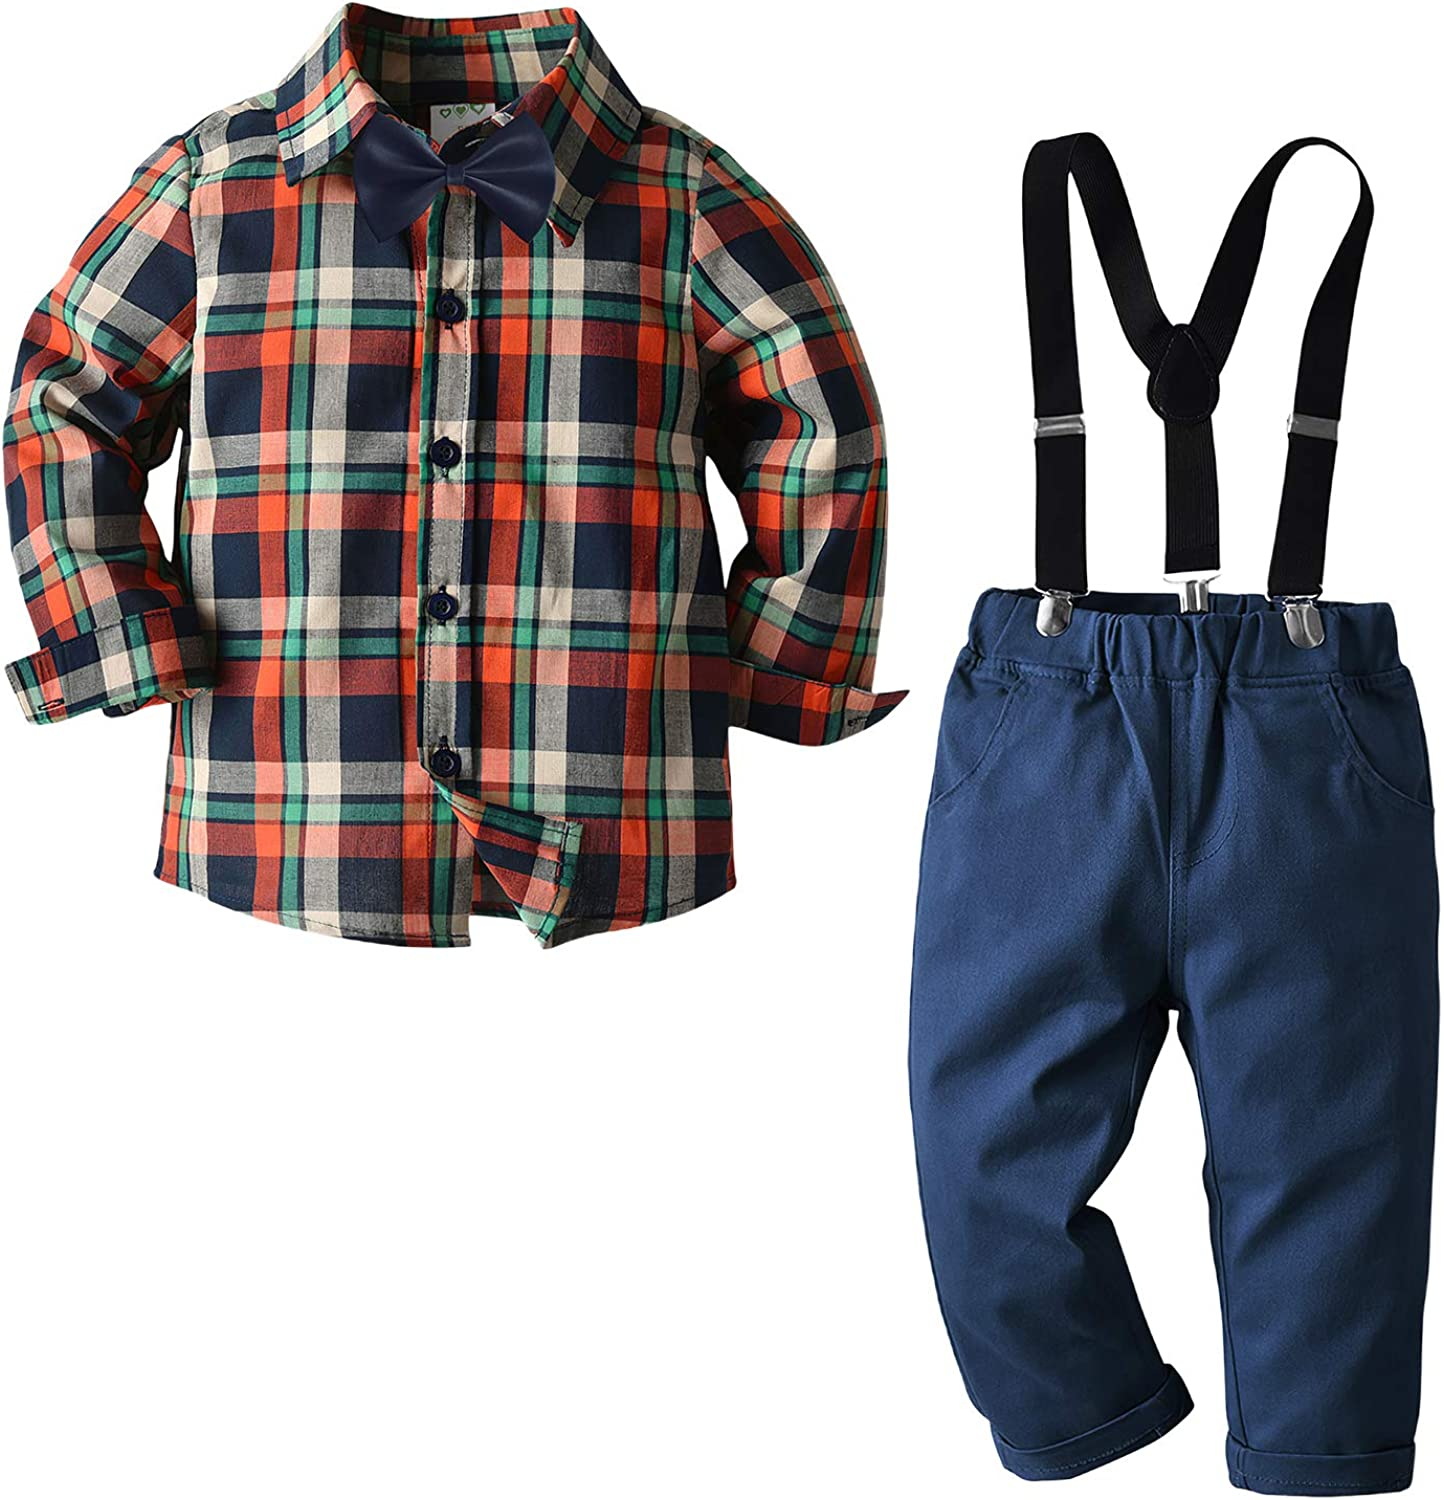 Kimocat Baby Boy Clothing Sets Plaid Suit Shirt Pants Bowtie Gentleman Outfit for Party Wedding